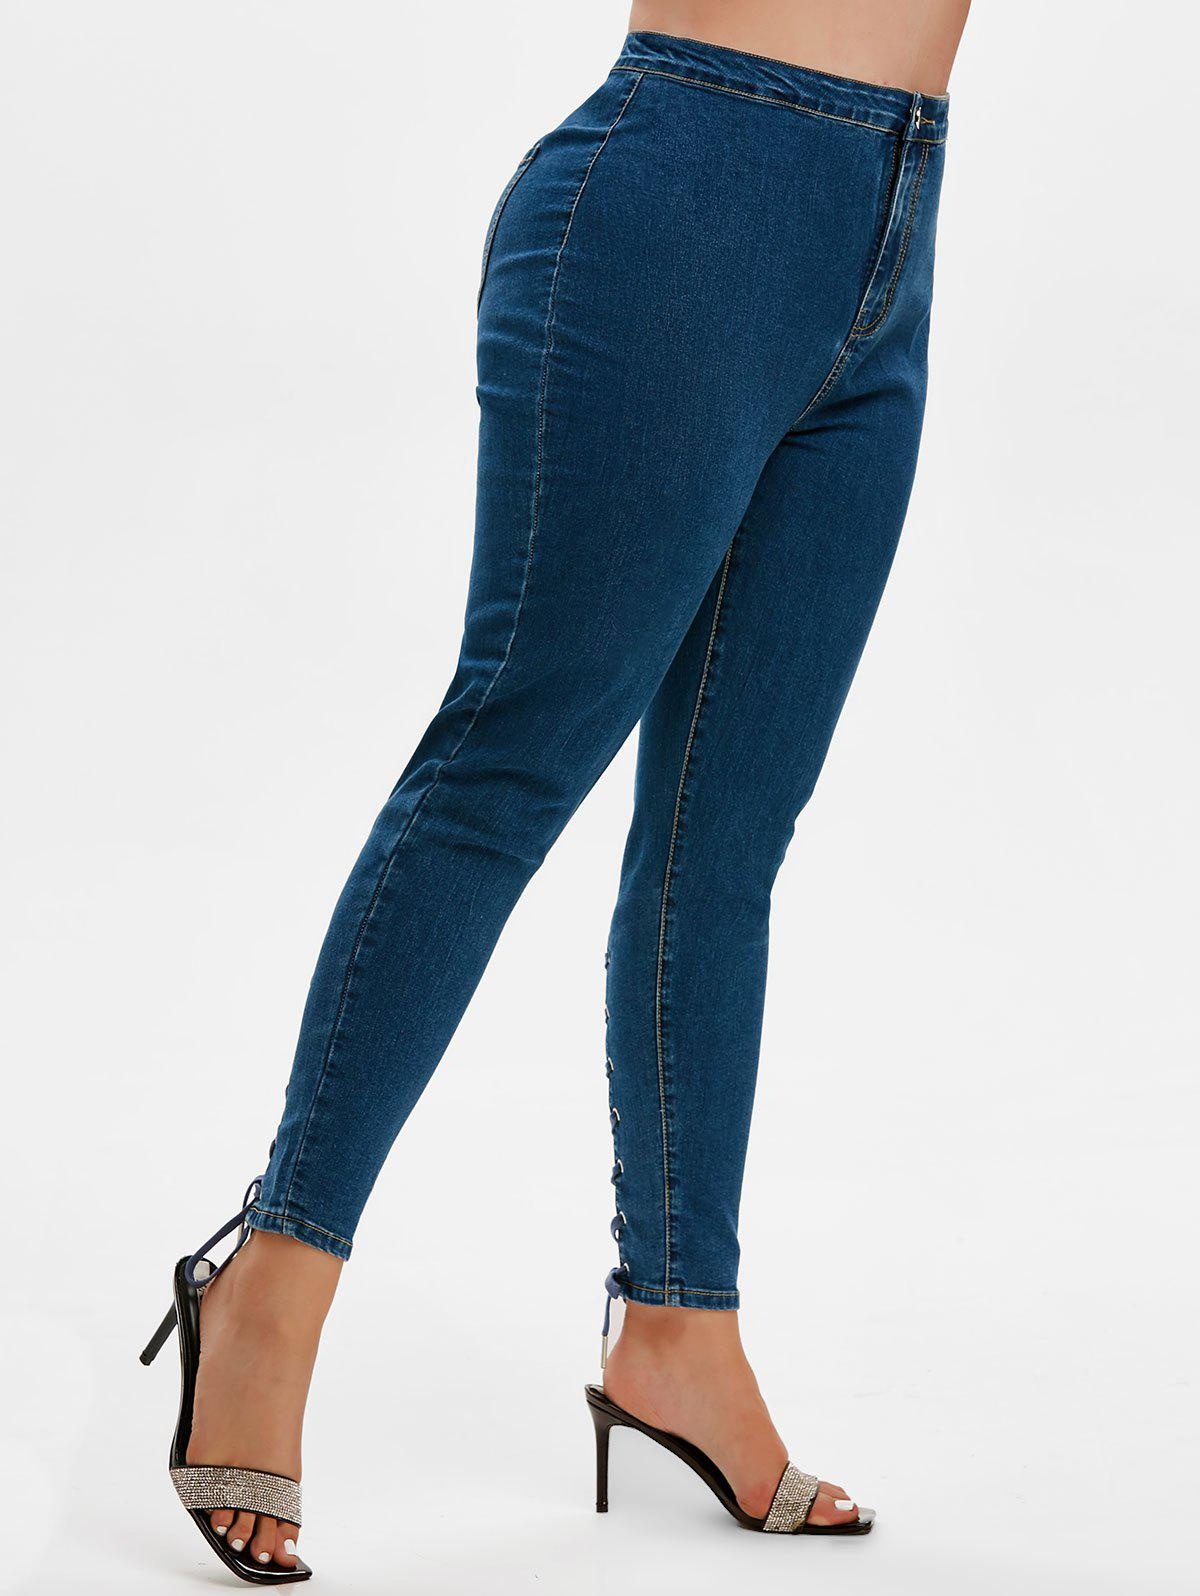 Plus Size High Waisted Lace Up Jeans - DEEP BLUE 4X